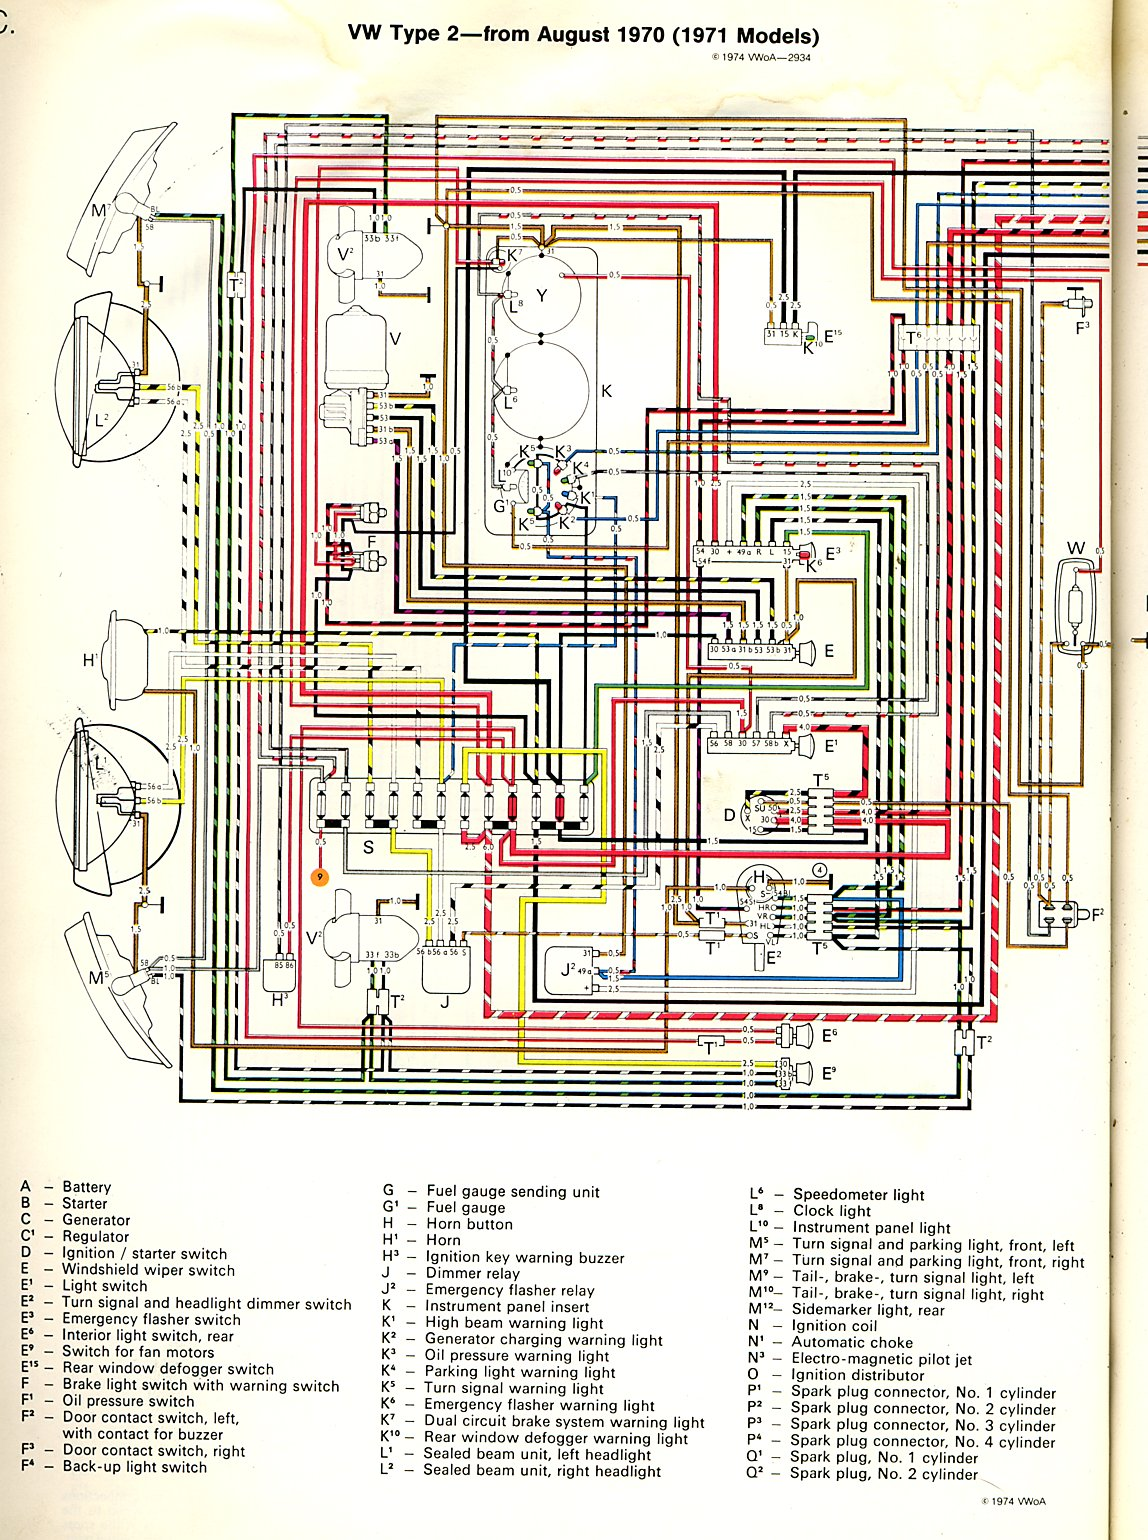 baybus_71a vw bus wiring diagram 1965 vw bus wiring diagram \u2022 wiring diagrams 1965 vw bus wiring harness at alyssarenee.co